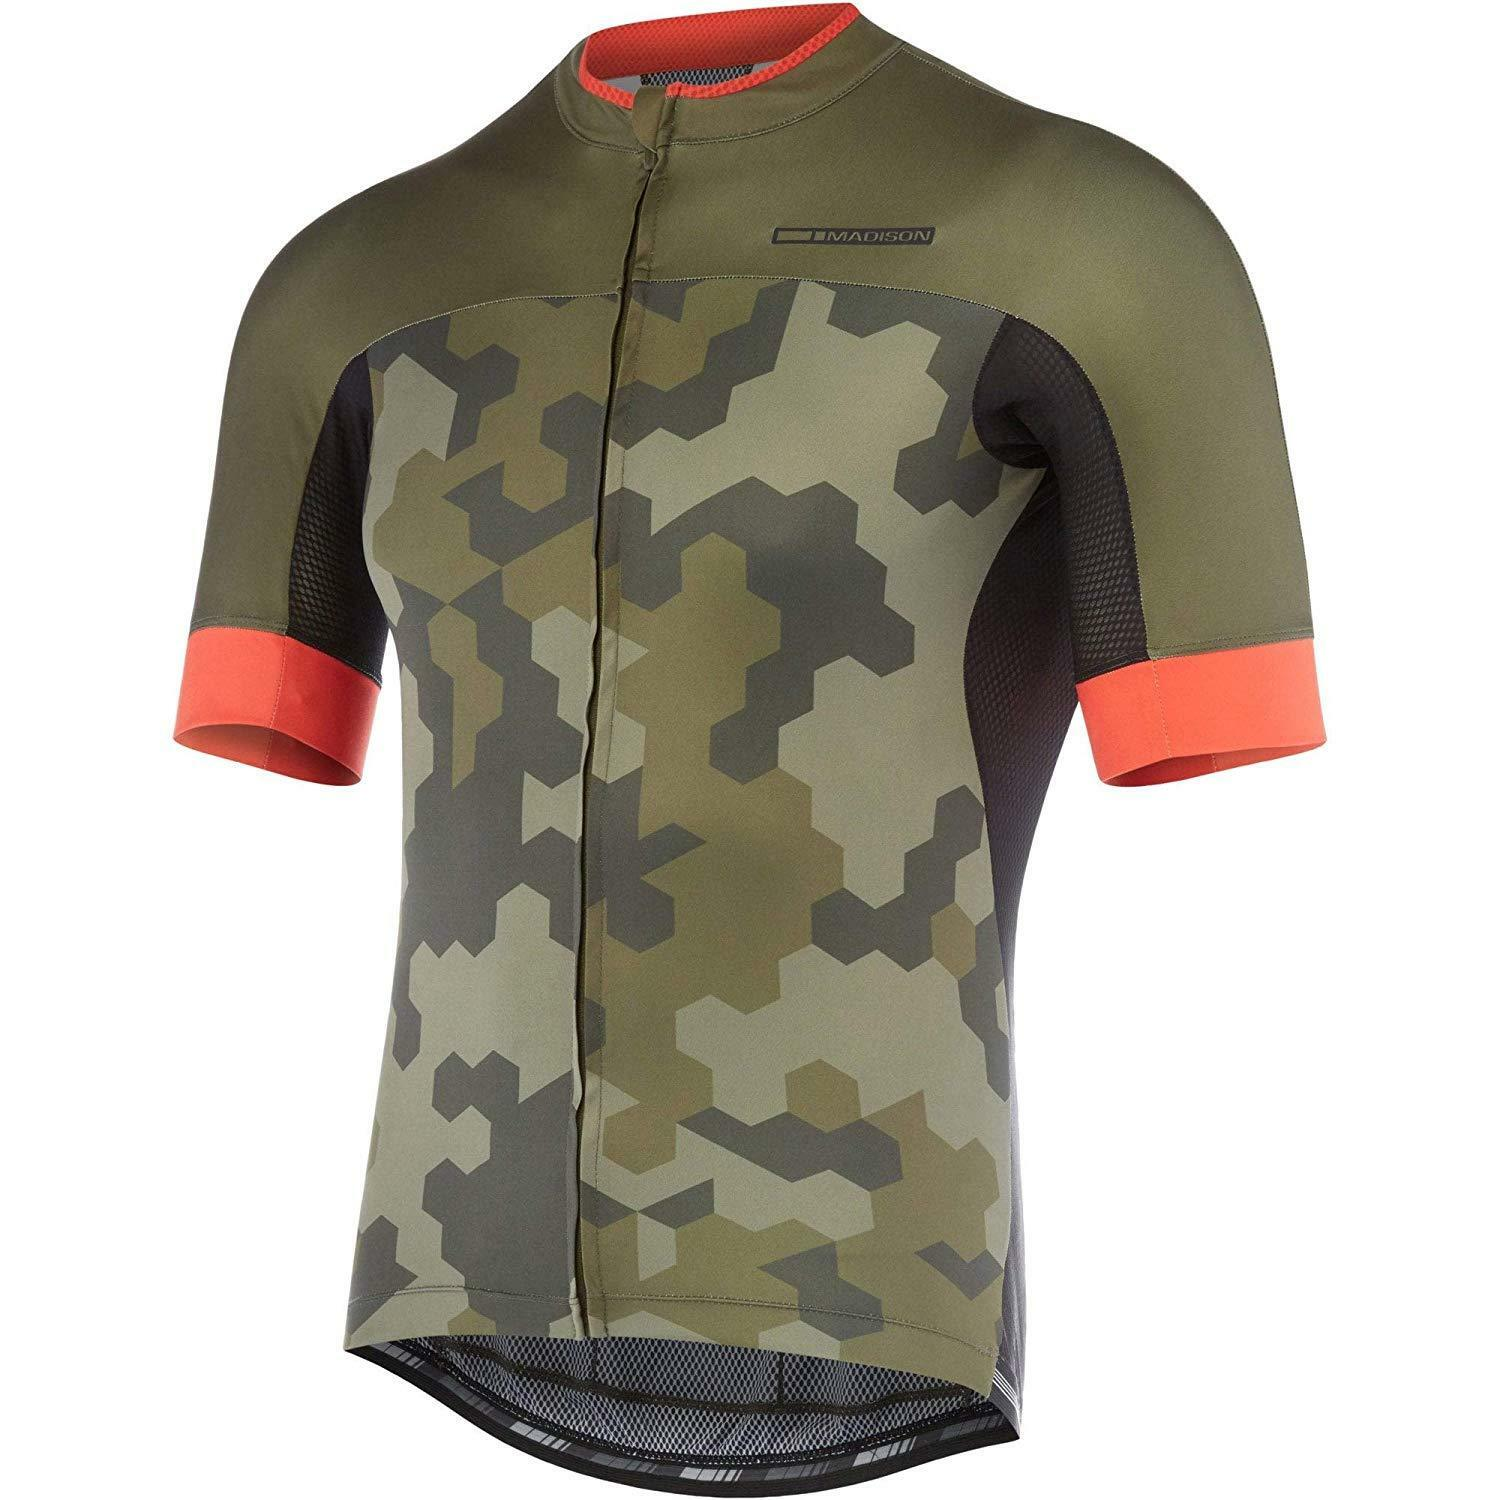 RoadRace Apex Herren short olive sleeve jersey, dark olive short / chilli ROT hex camo X-larg 336e5c